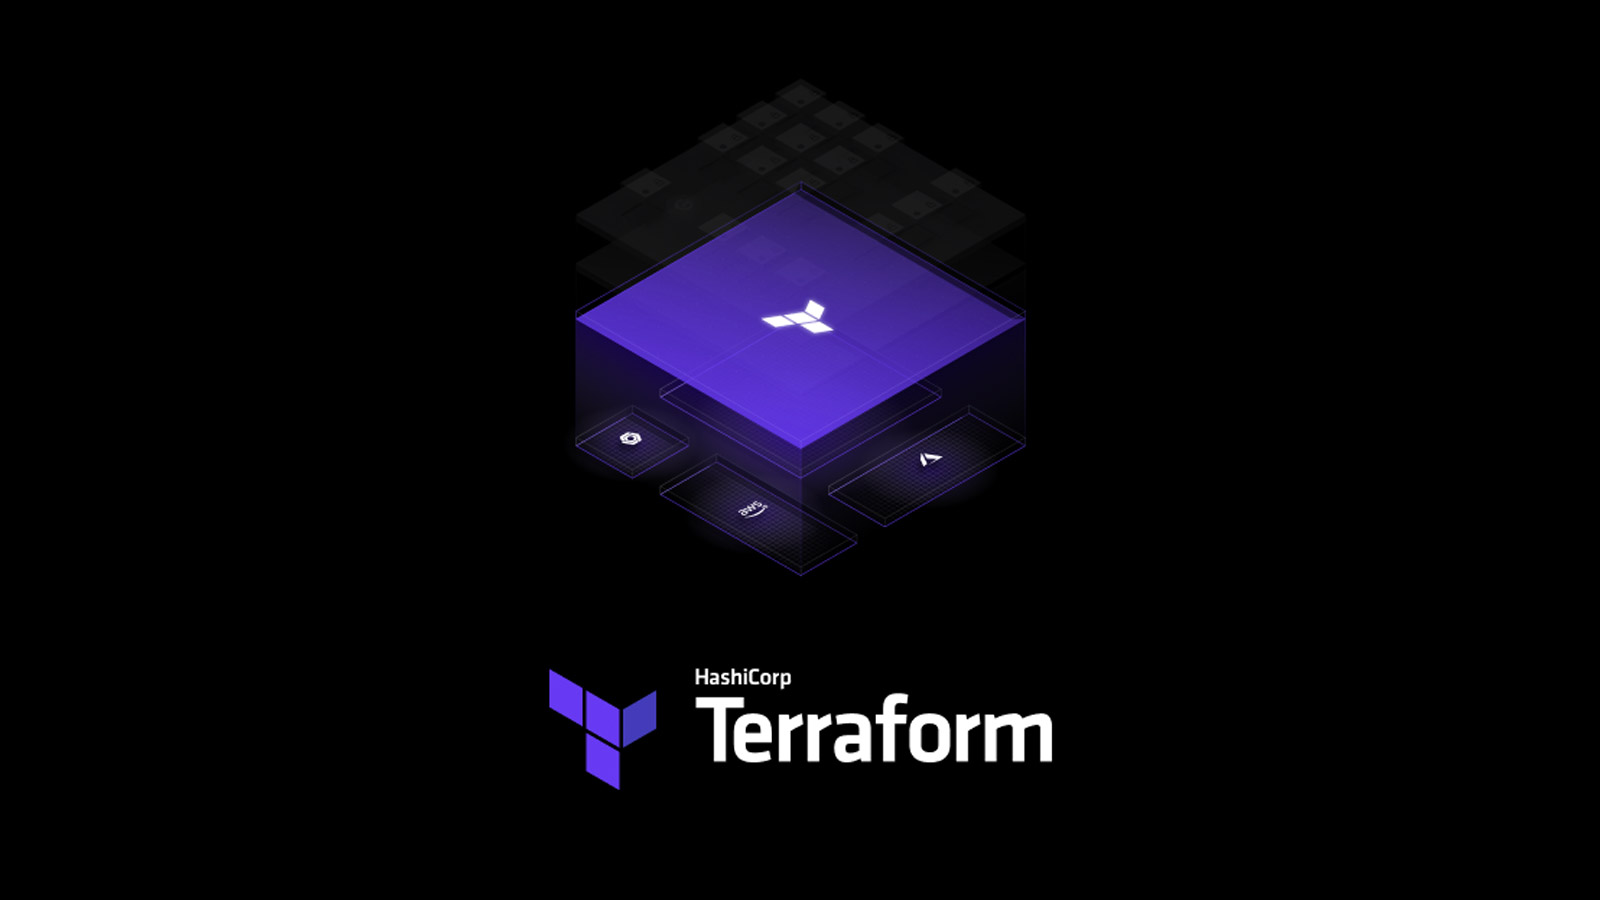 How to Install and Configure Terraform on Ubuntu 18.04